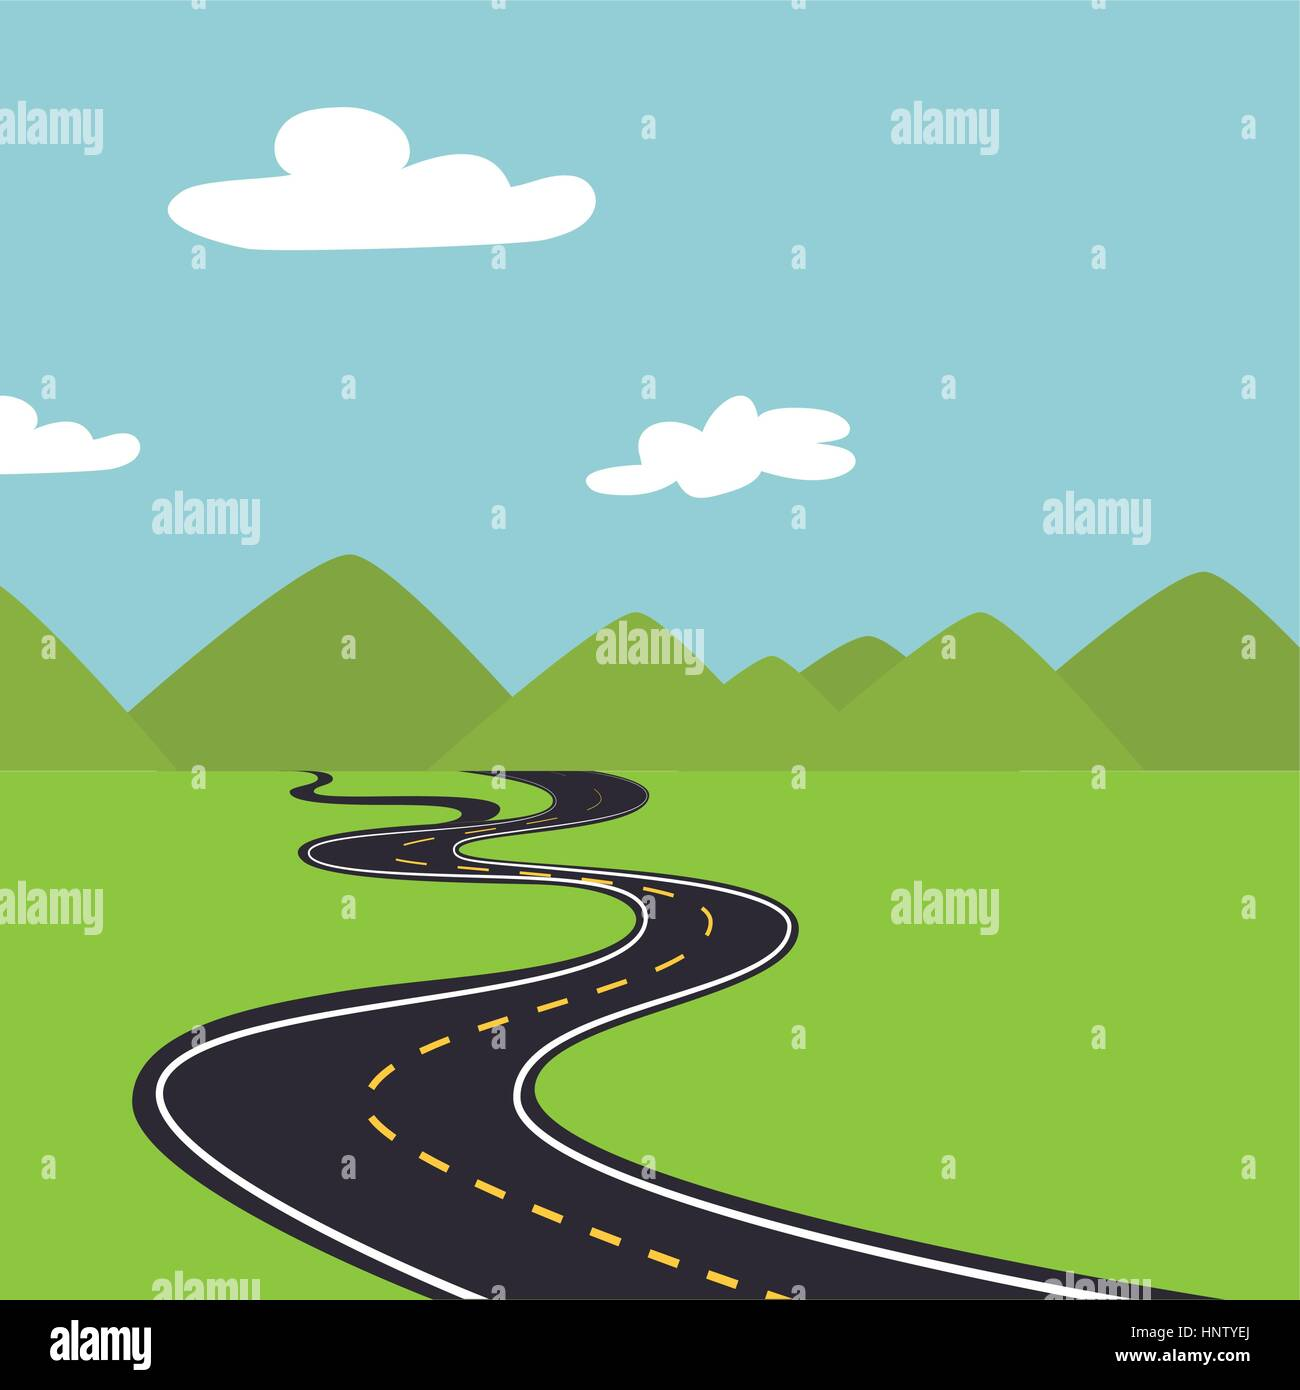 Landscape With Mountains And Road Way Vector Illustration Stock Vector Image Art Alamy